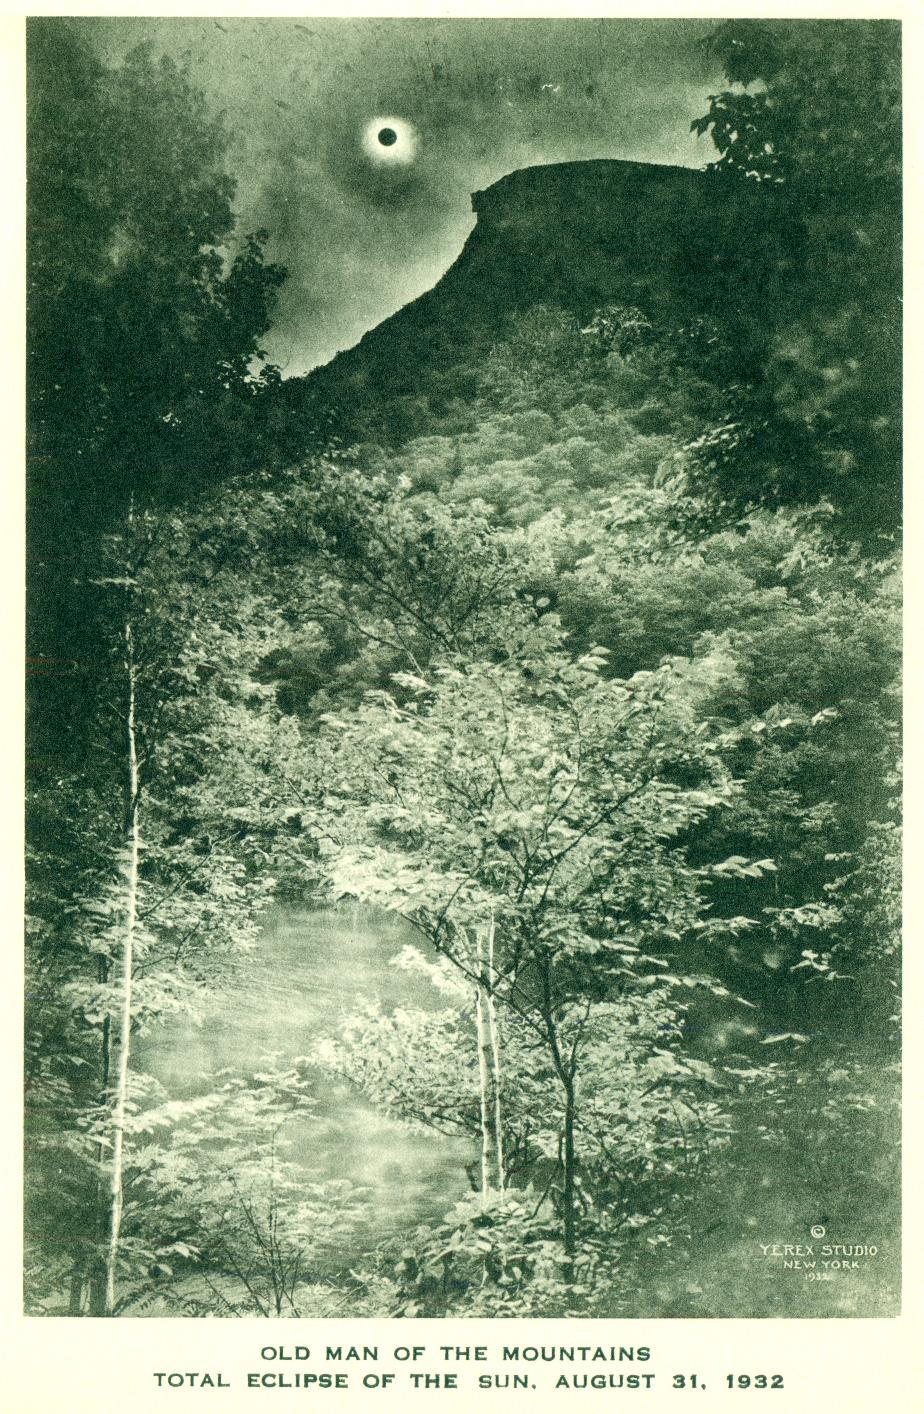 Old Man of the Mountains, Solar Eclipse August 31 1932